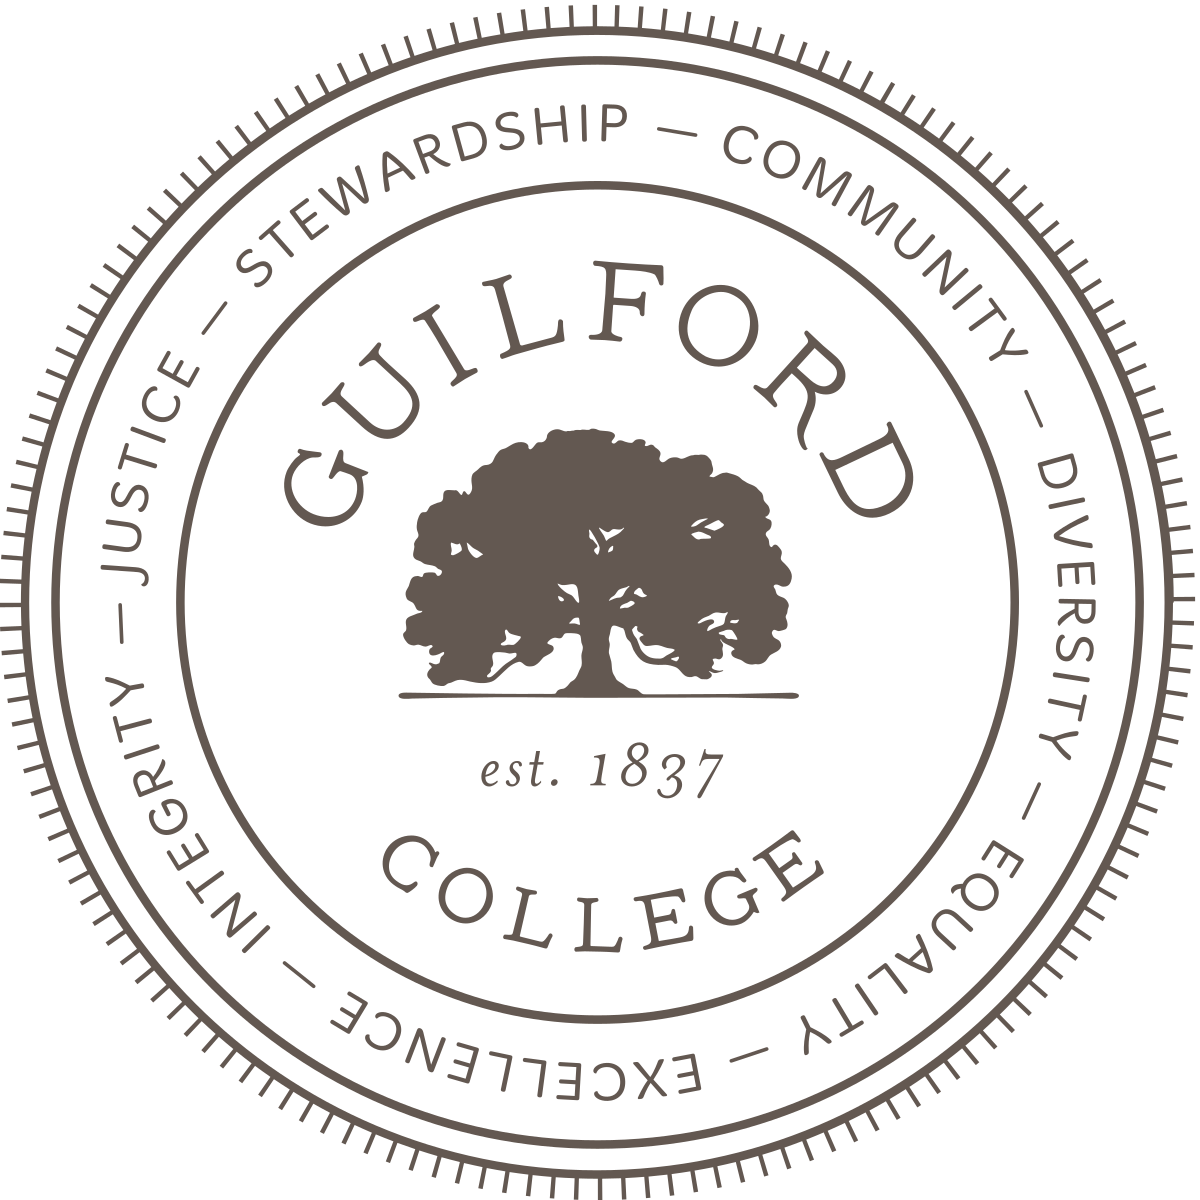 Diversity drawing tree logo. Guilford college wikipedia